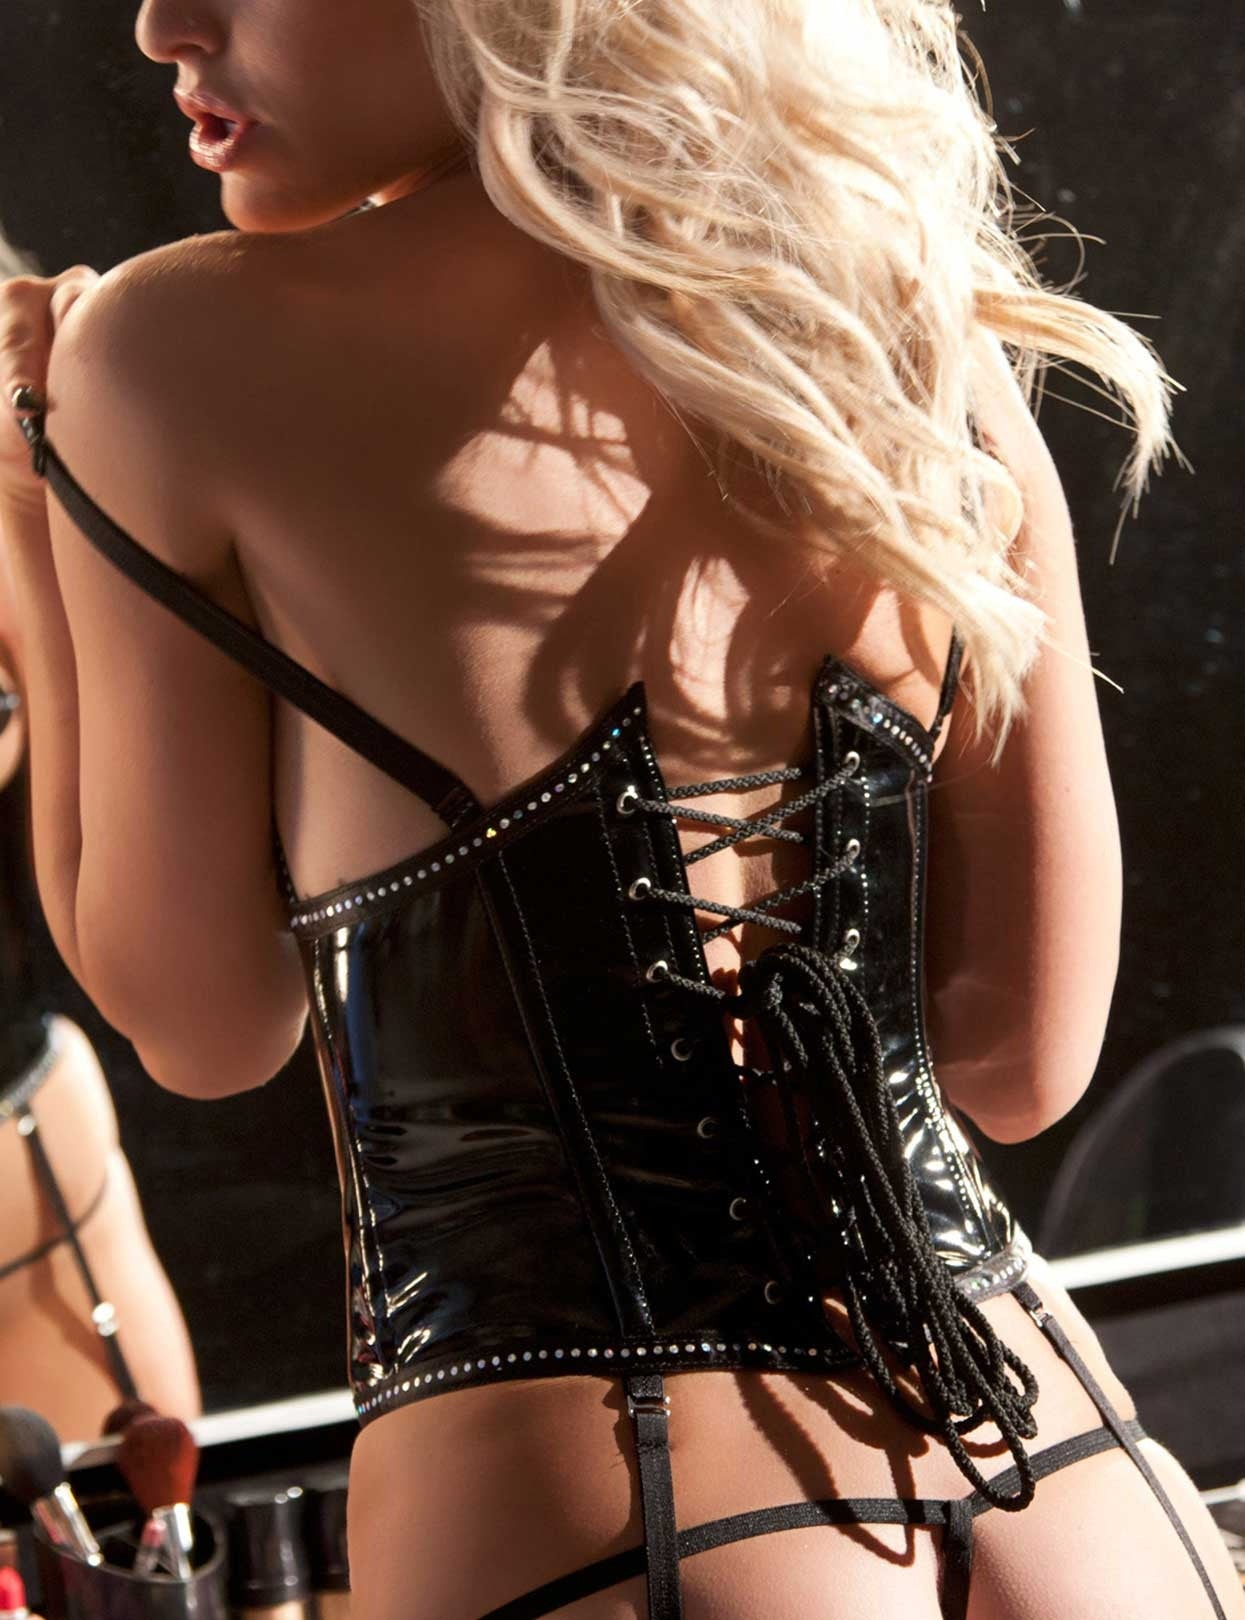 Vinyl and Rhinestone Cupless Corset Set - just damn sexy  - 2